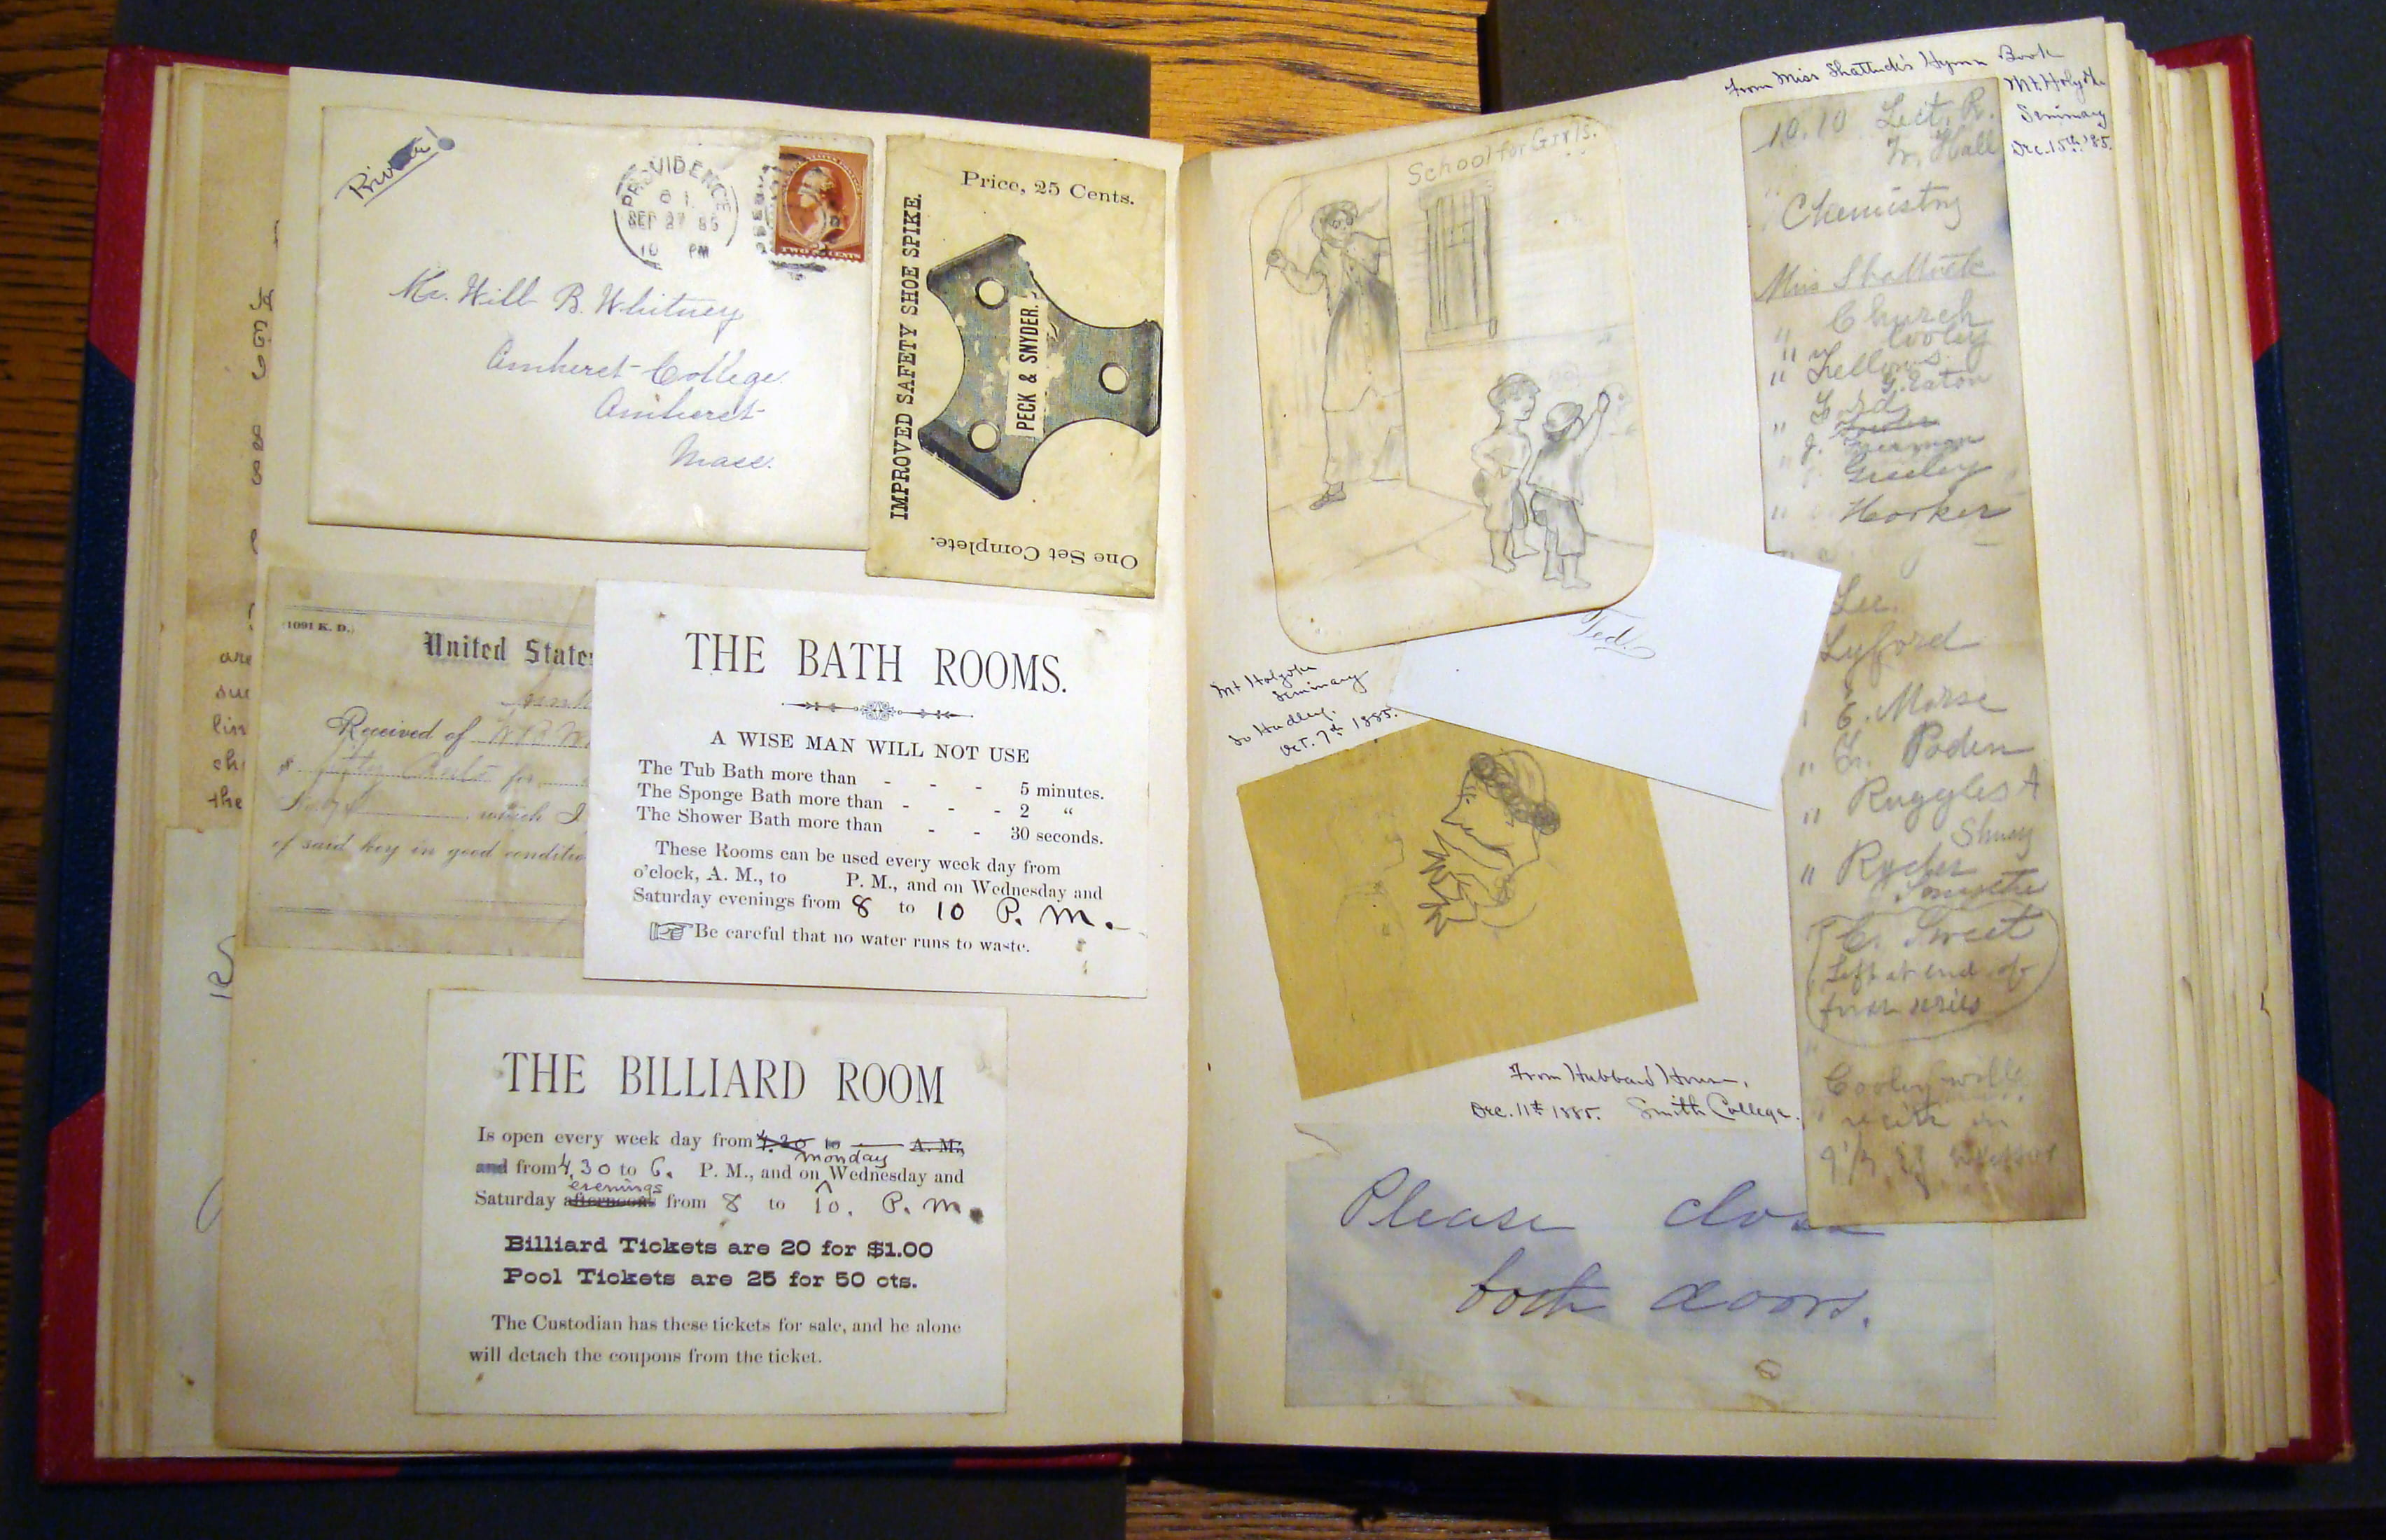 William Belcher Whitney (AC 1887) scrapbook